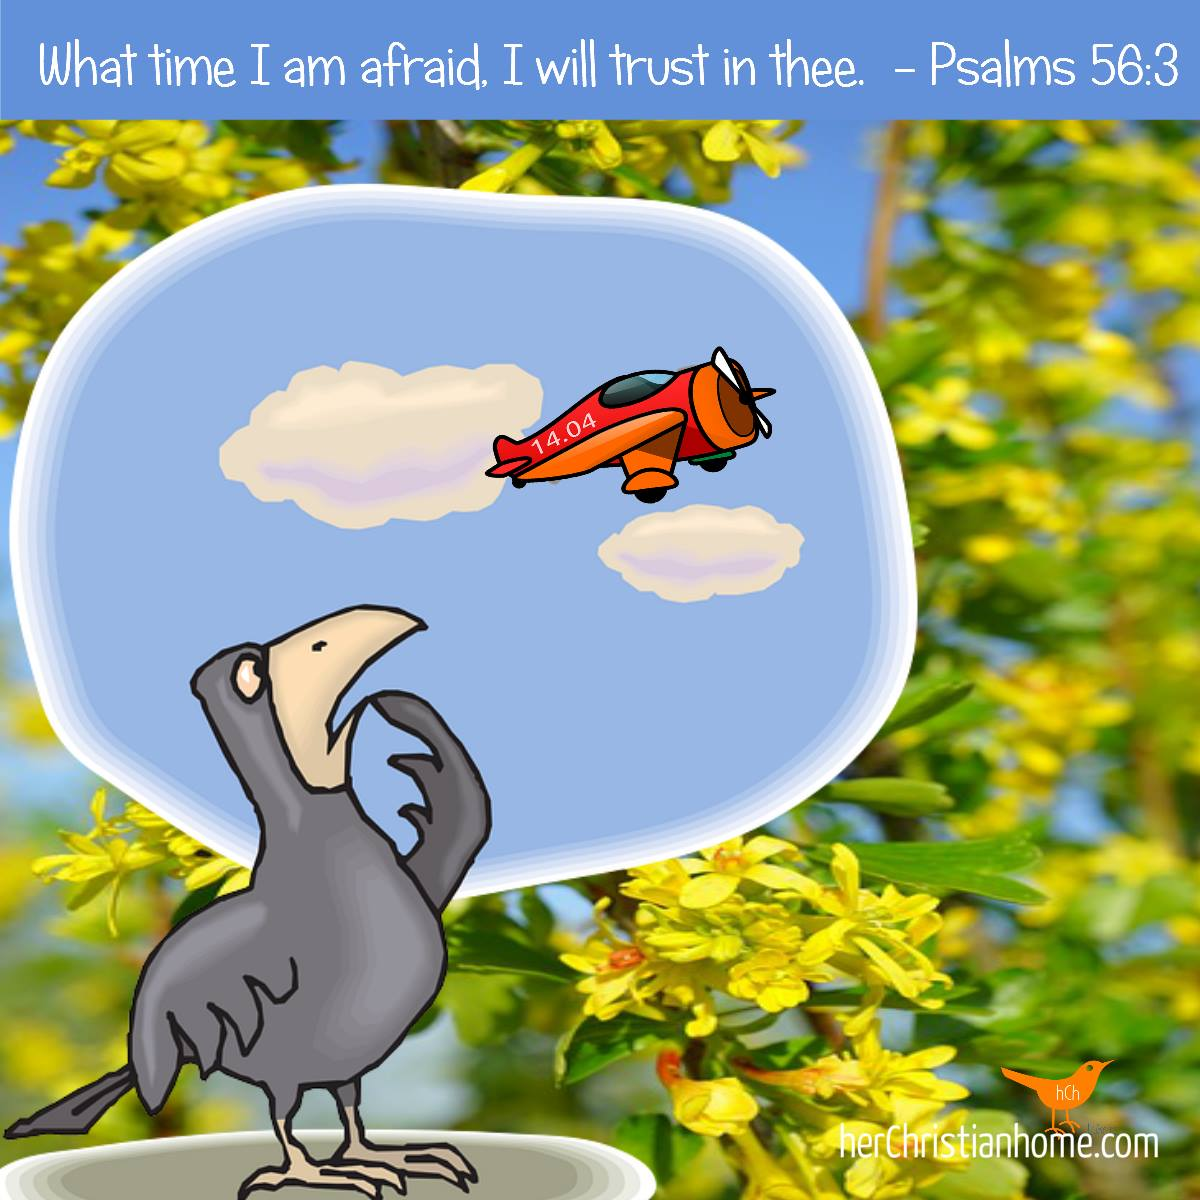 What time I am afraid I will trust in thee. Psalms 56:3 KJV #bibleverses #overcomefear